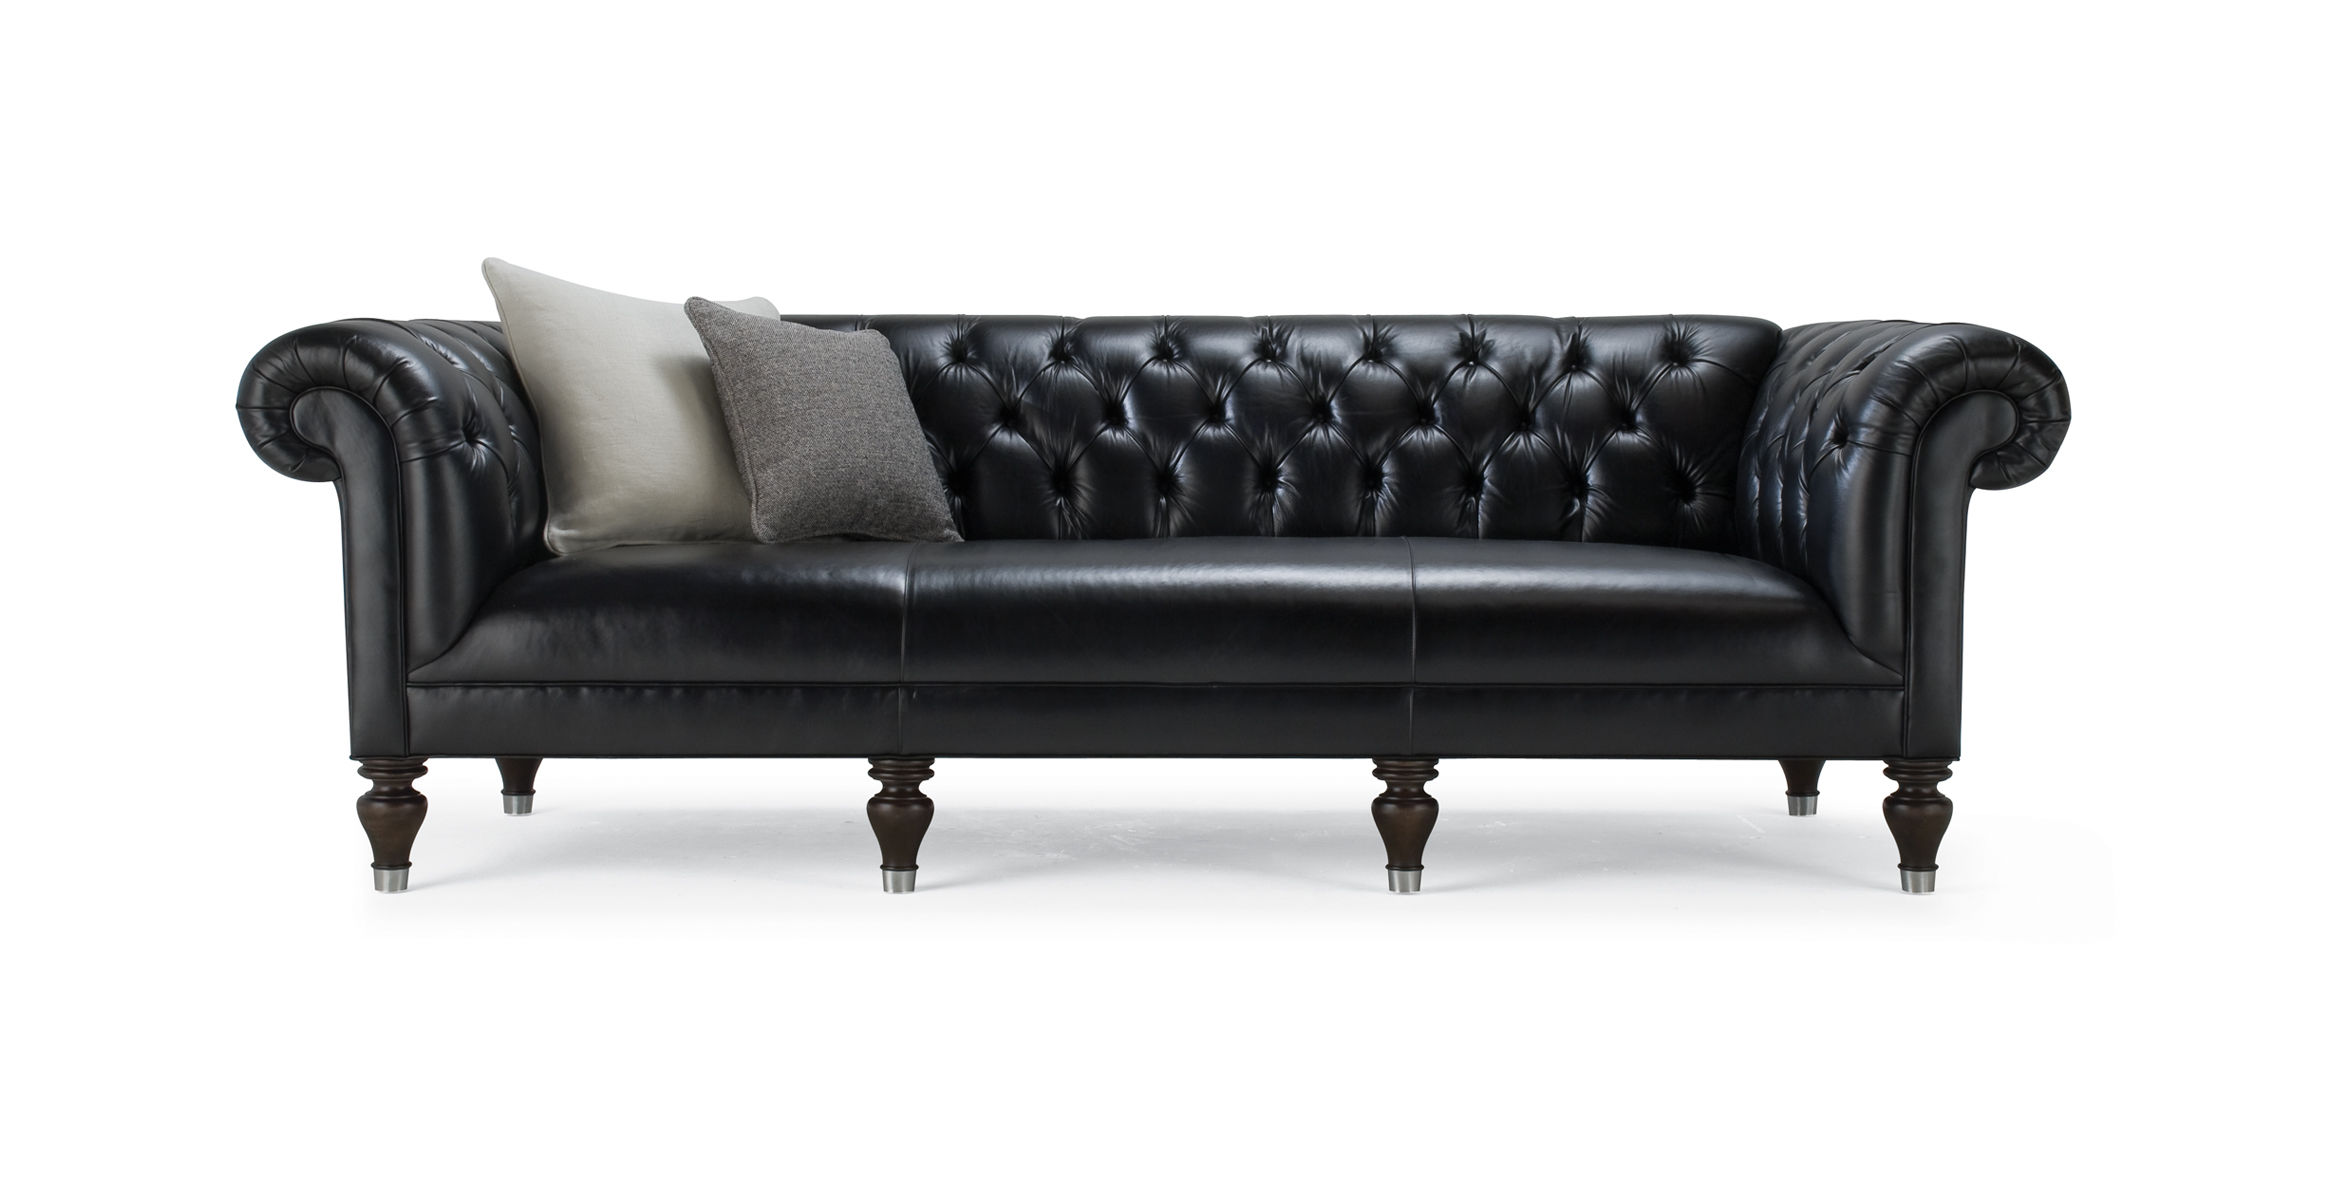 fancy bobs furniture leather sofa concept-Elegant Bobs Furniture Leather sofa Ideas